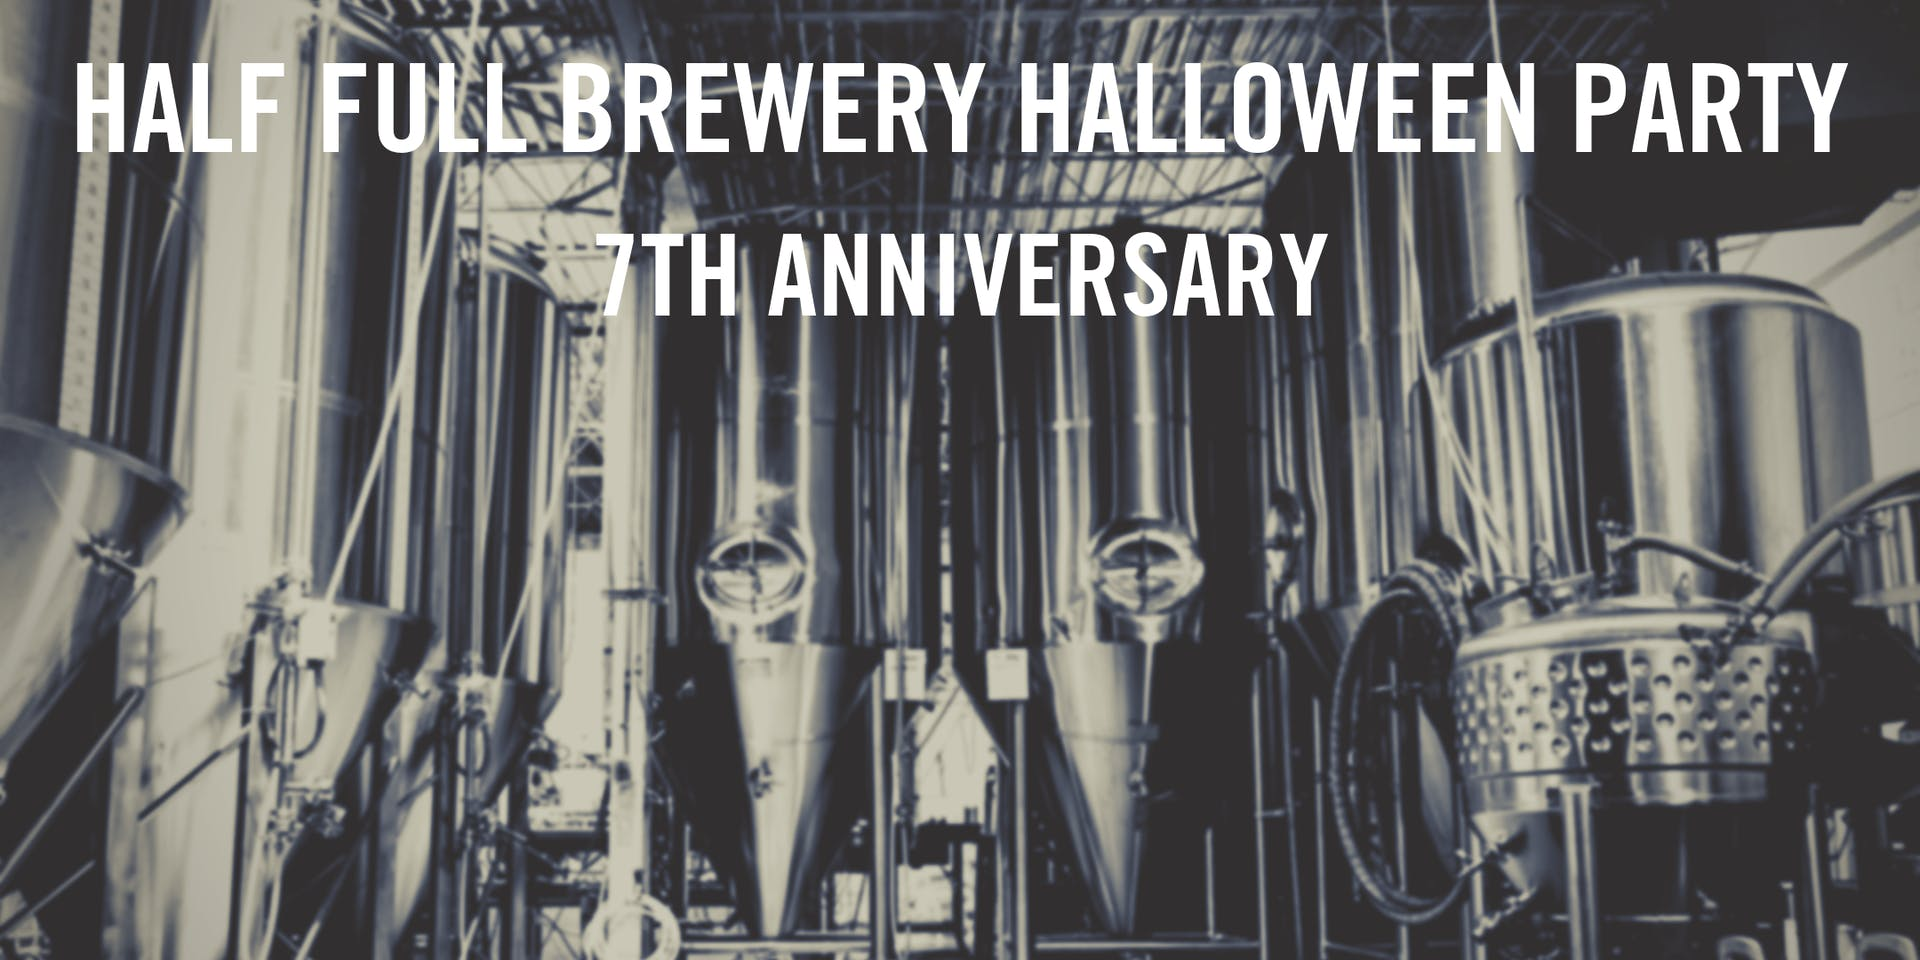 HALF FULL BREWERY HALLOWEEN PARTY 7TH ANNIVERSARY